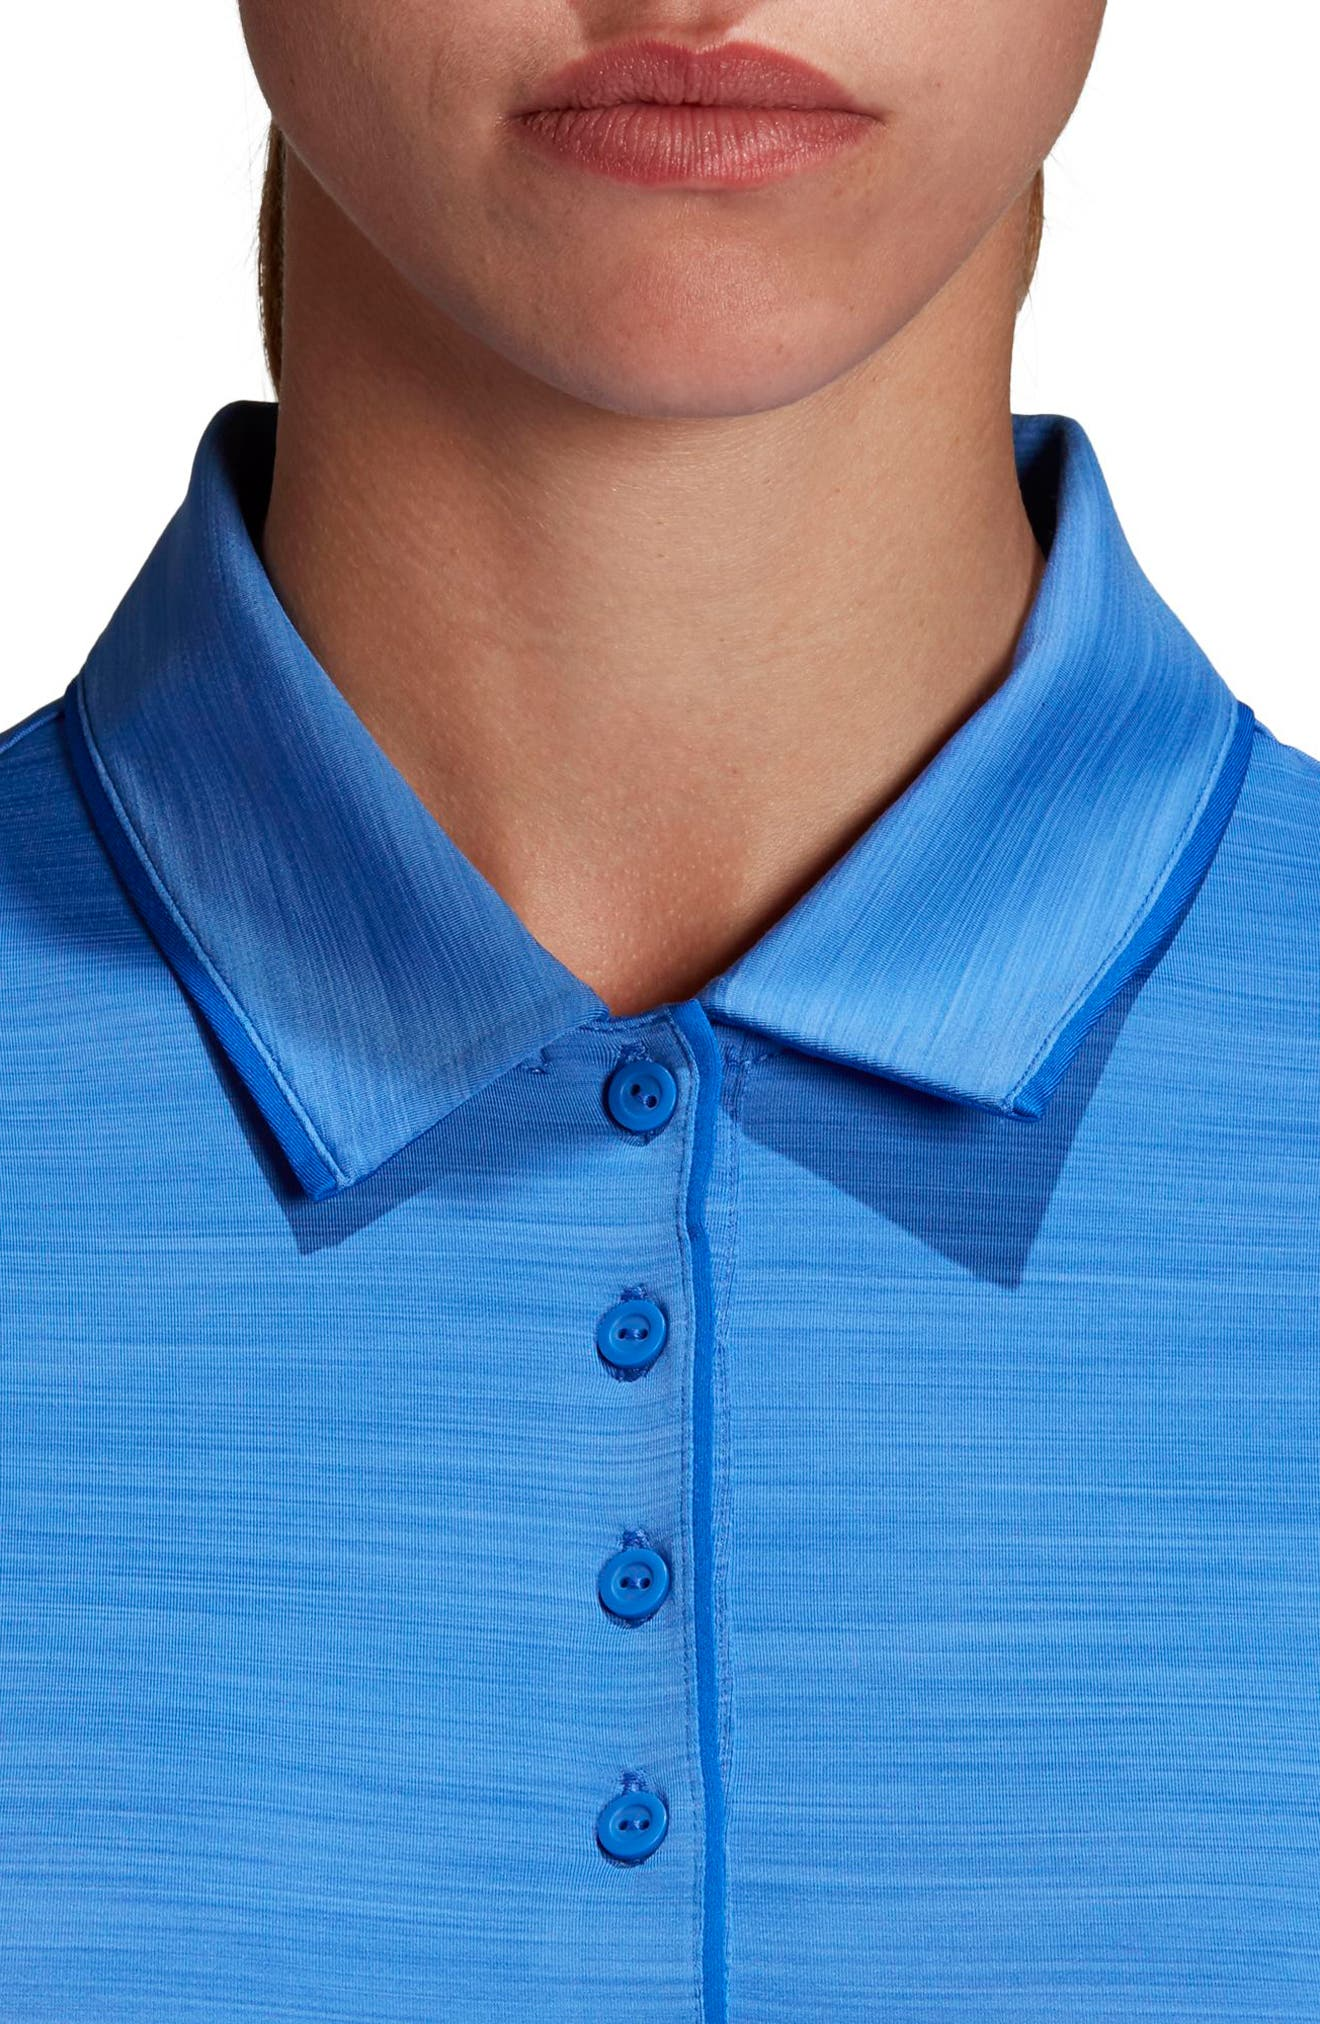 Ultimate365 Sleeveless Golf Polo,                             Alternate thumbnail 6, color,                             456